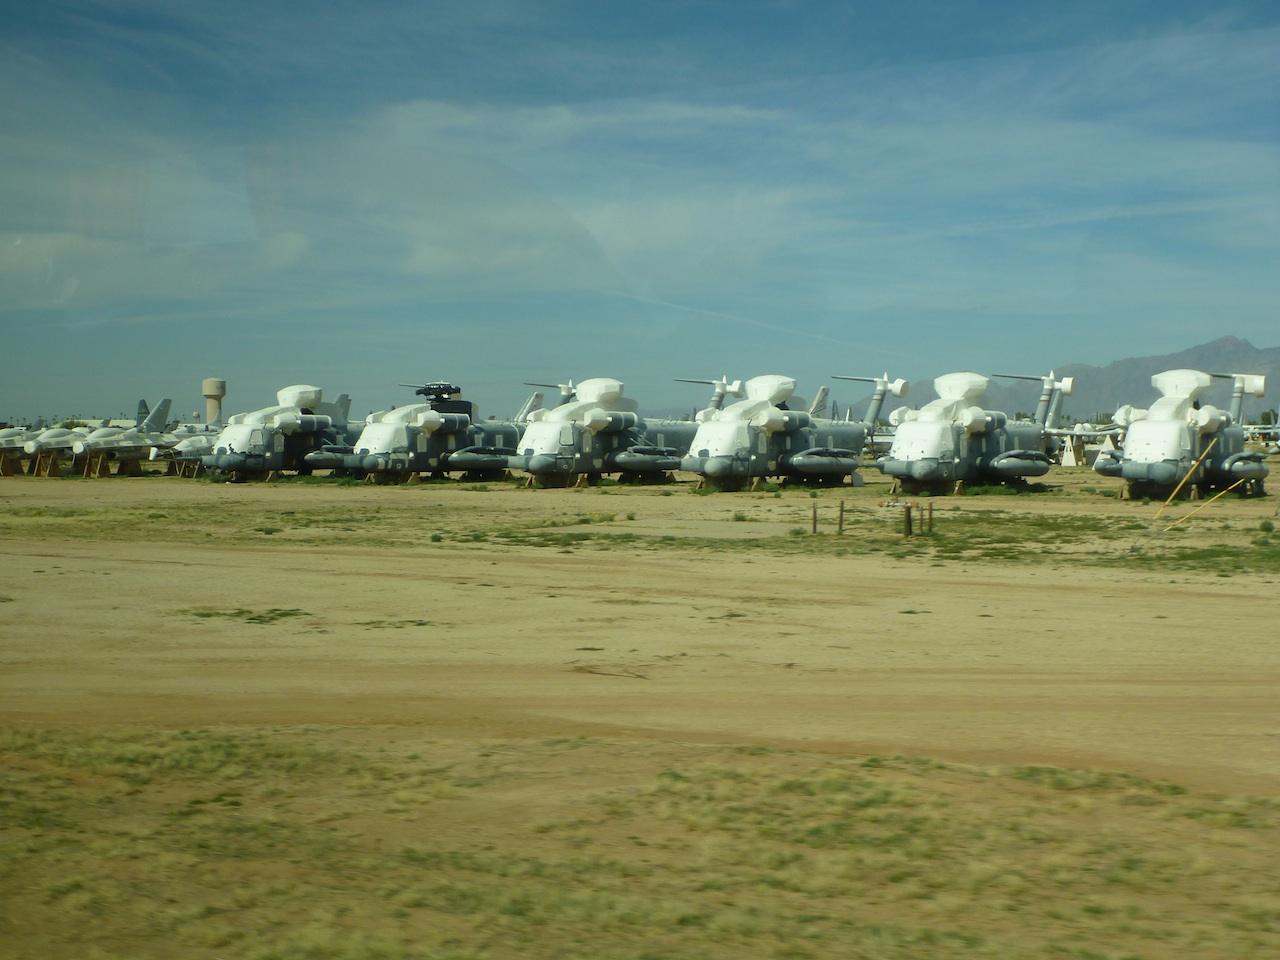 Helicopters In The Boneyard